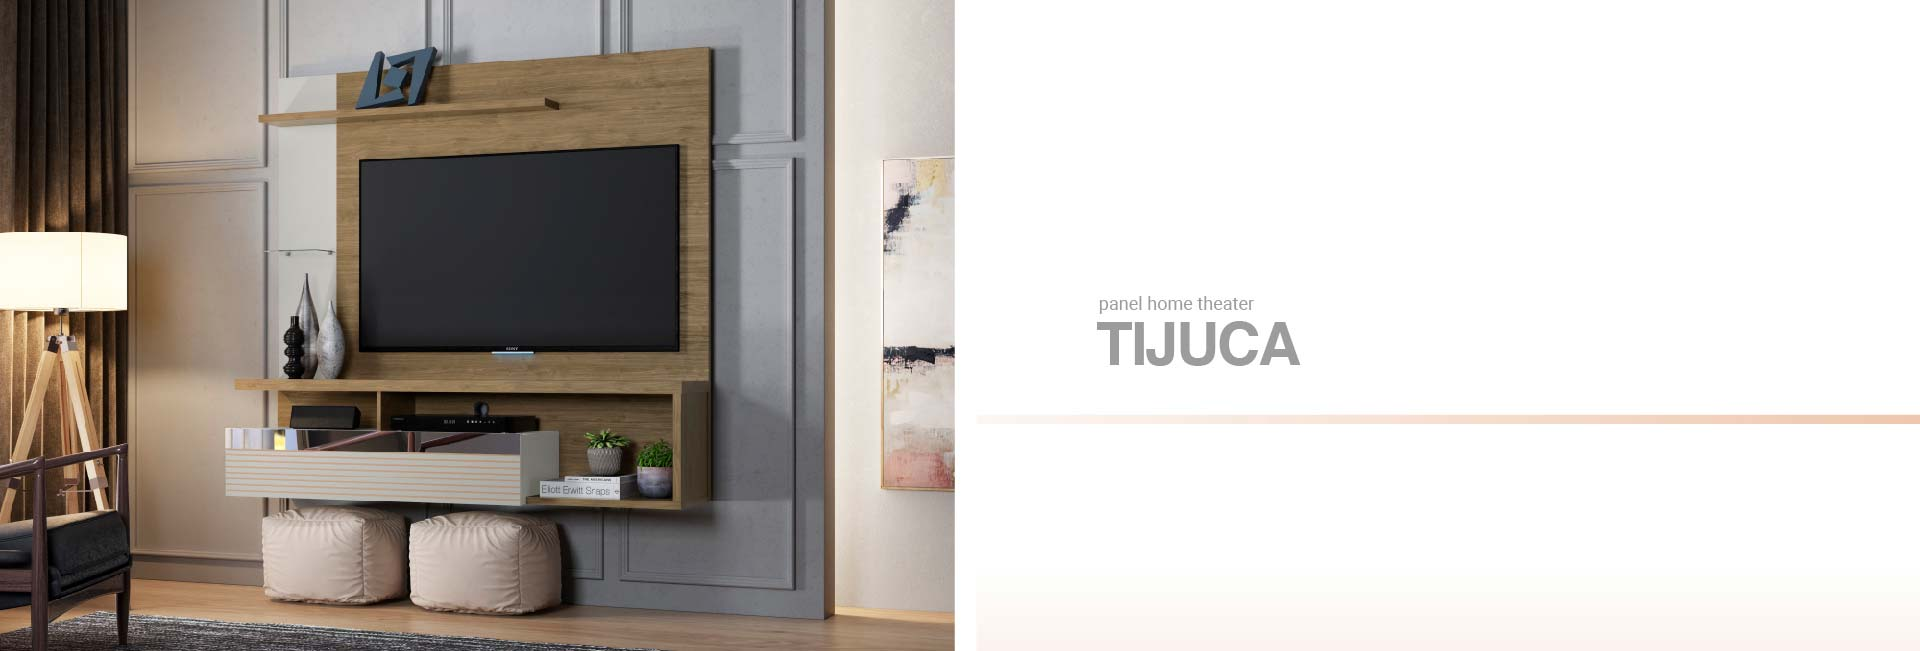 Tijuca TV Panel